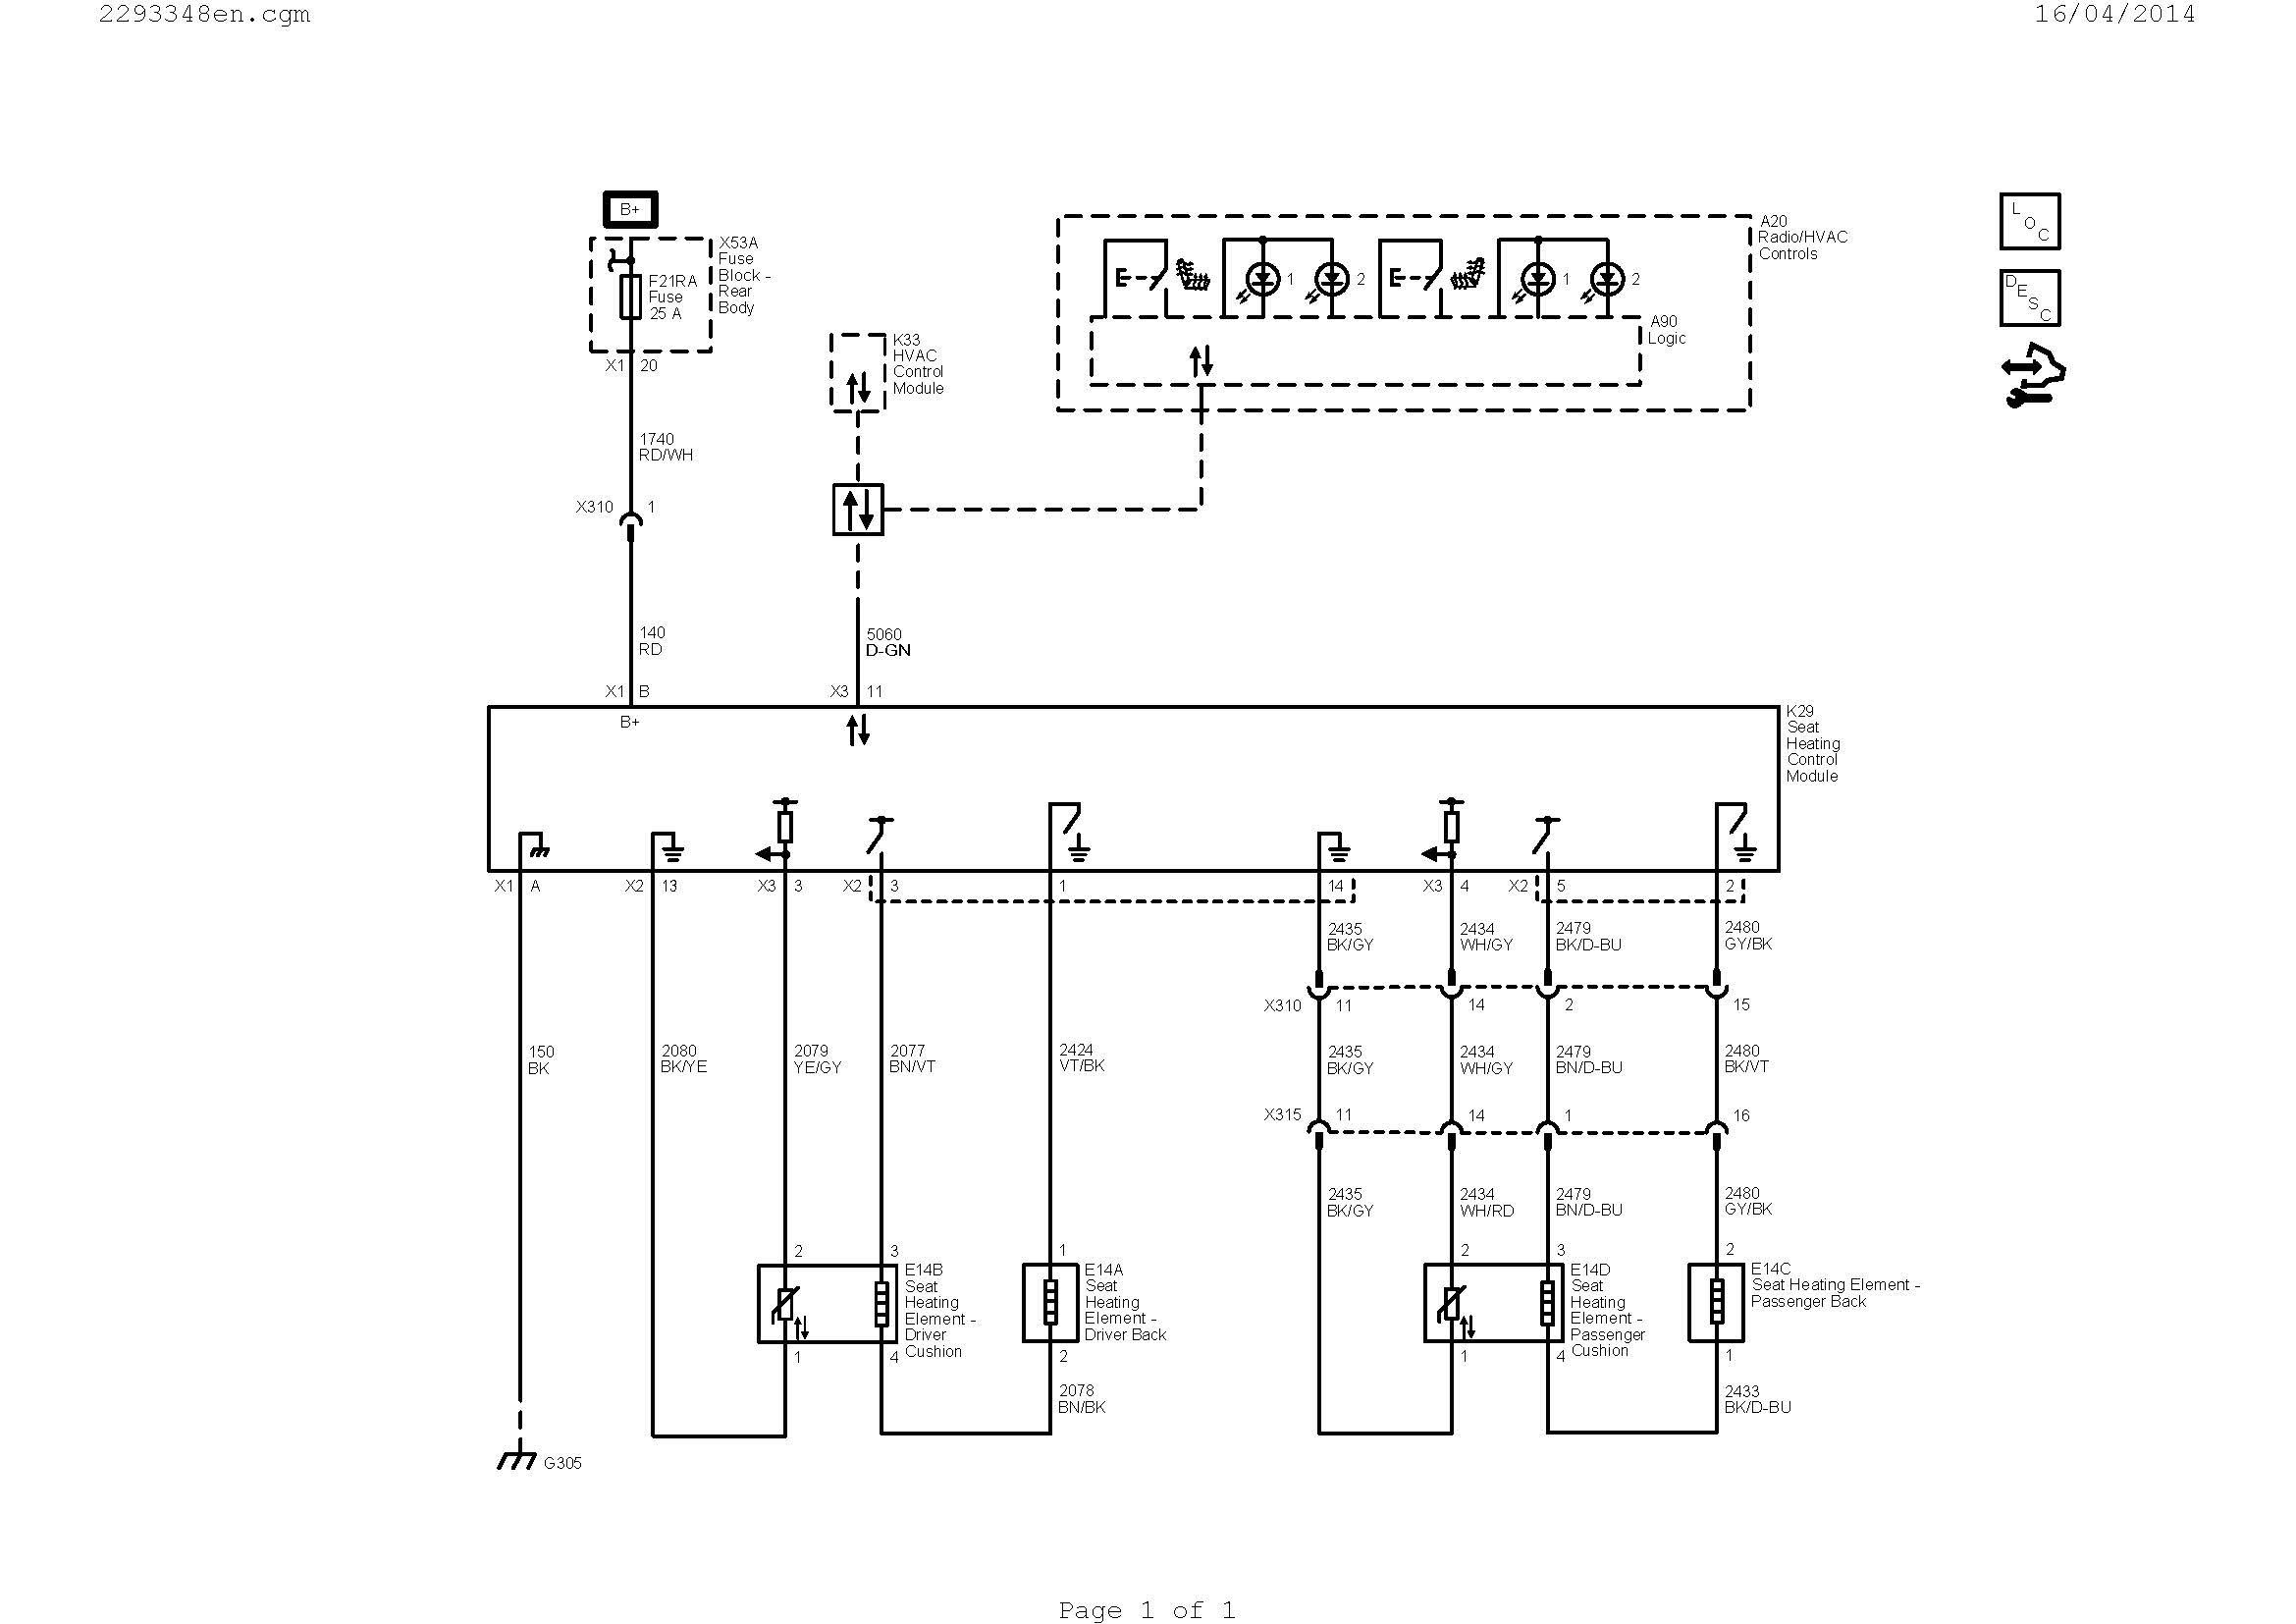 kti hydraulic pump wiring diagram Collection-Wiring A Ac thermostat Diagram New Wiring Diagram Ac Valid Hvac 3 Wire Circuit Diagram 12-l